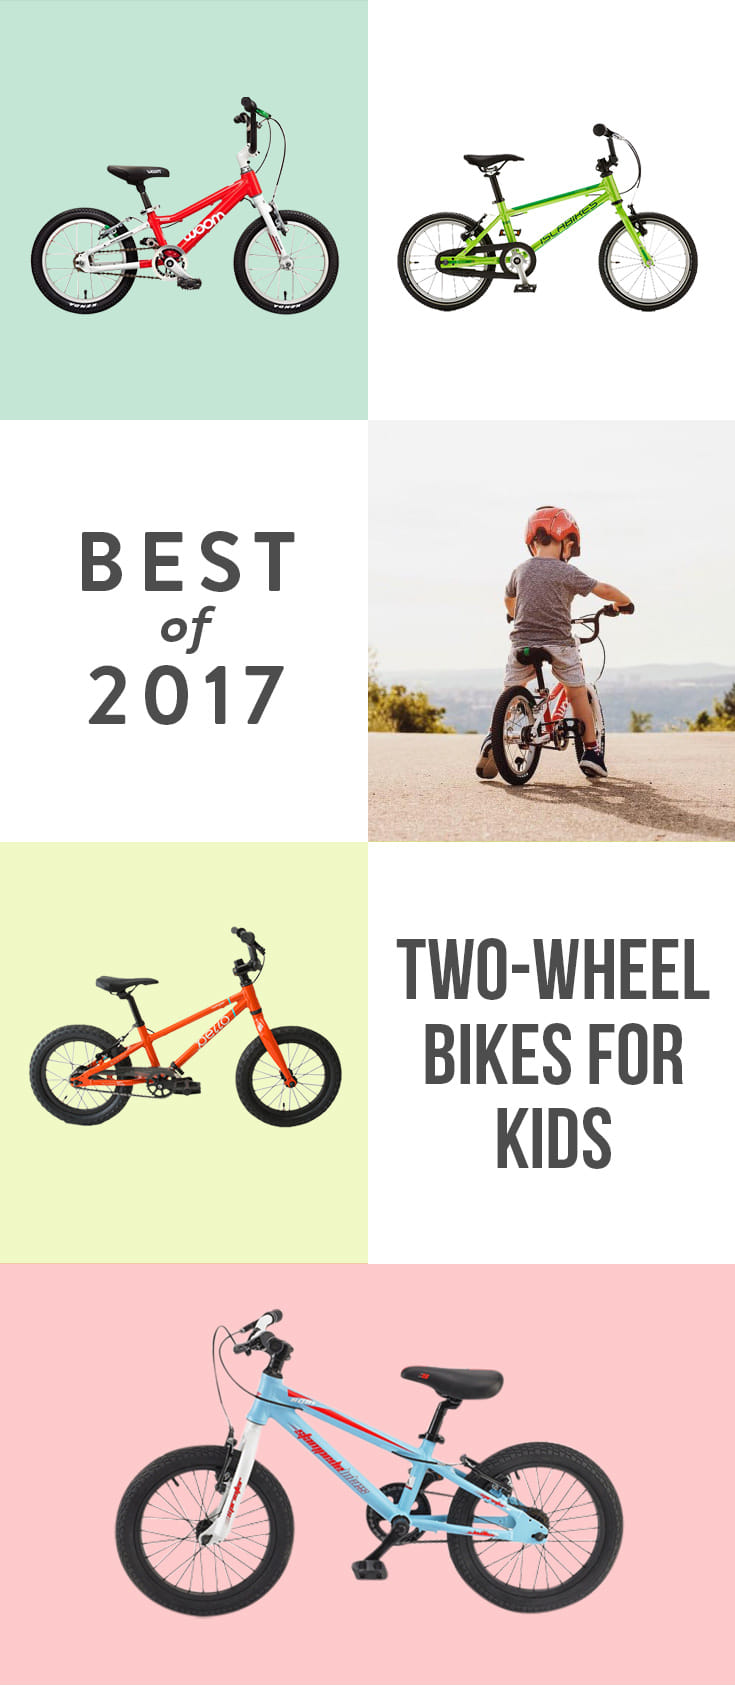 Start here to get the best first pedal bike for your kid.